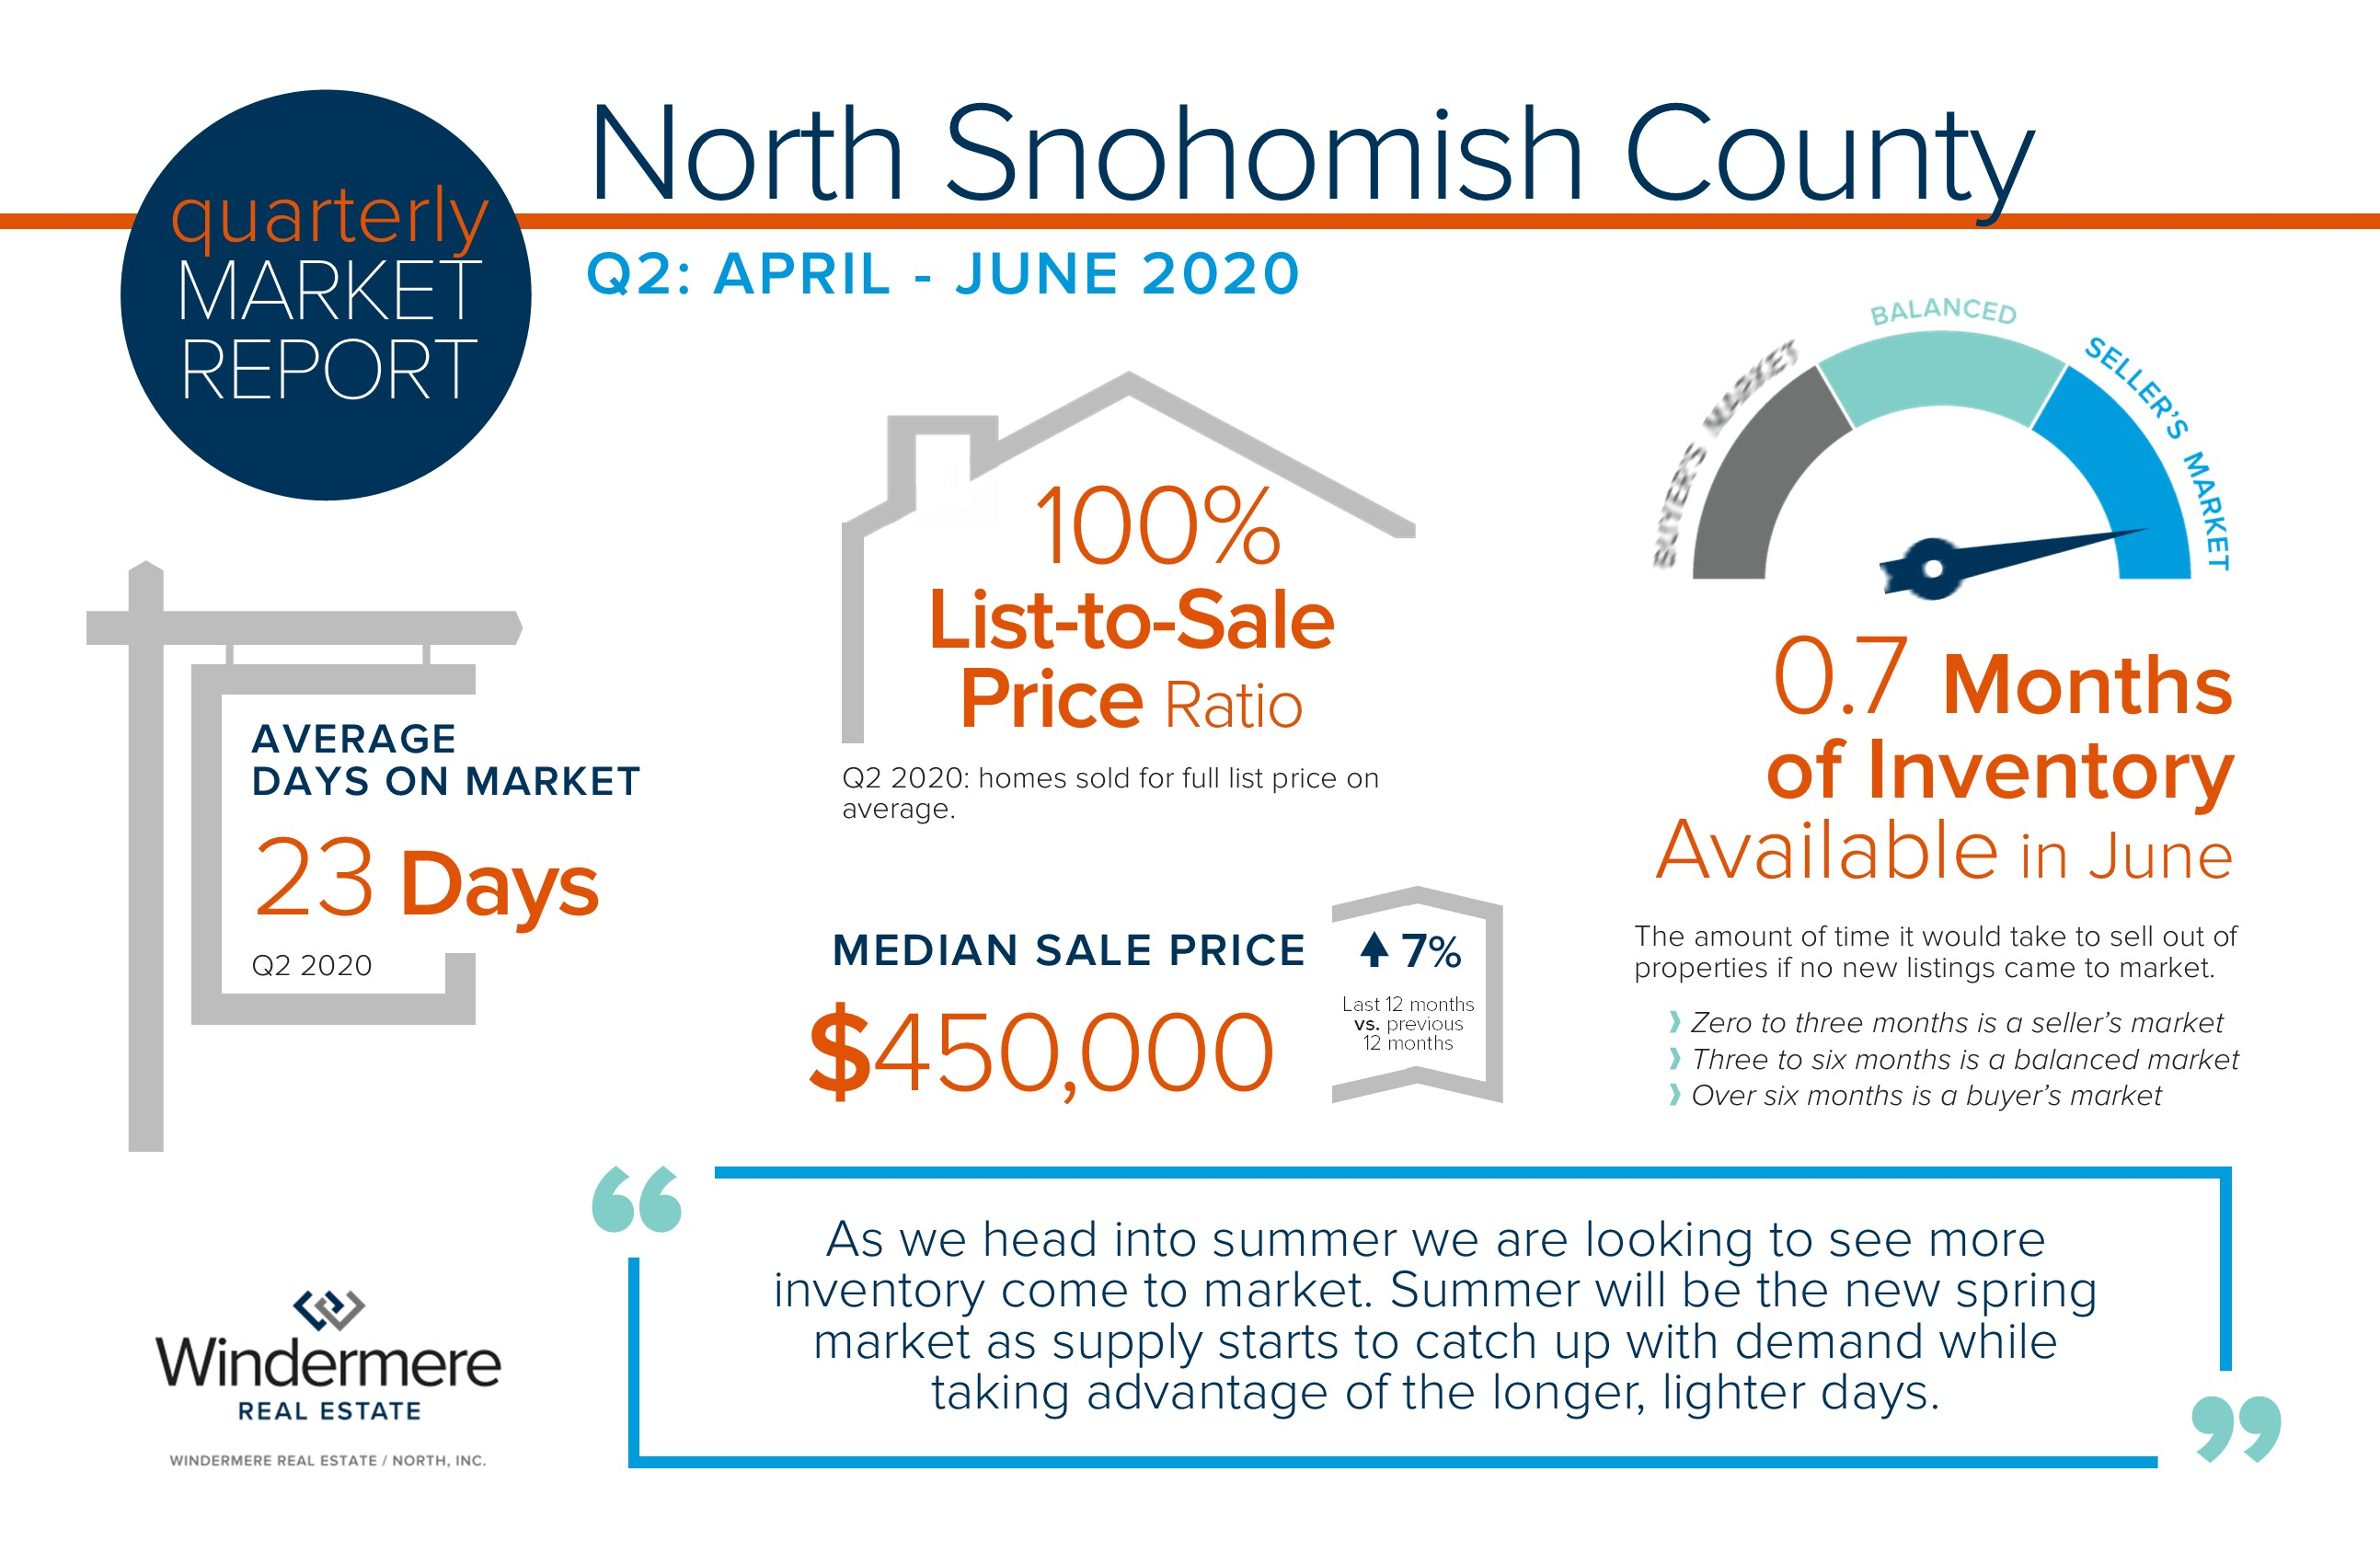 Quarterly Market Report for North Snohomish County